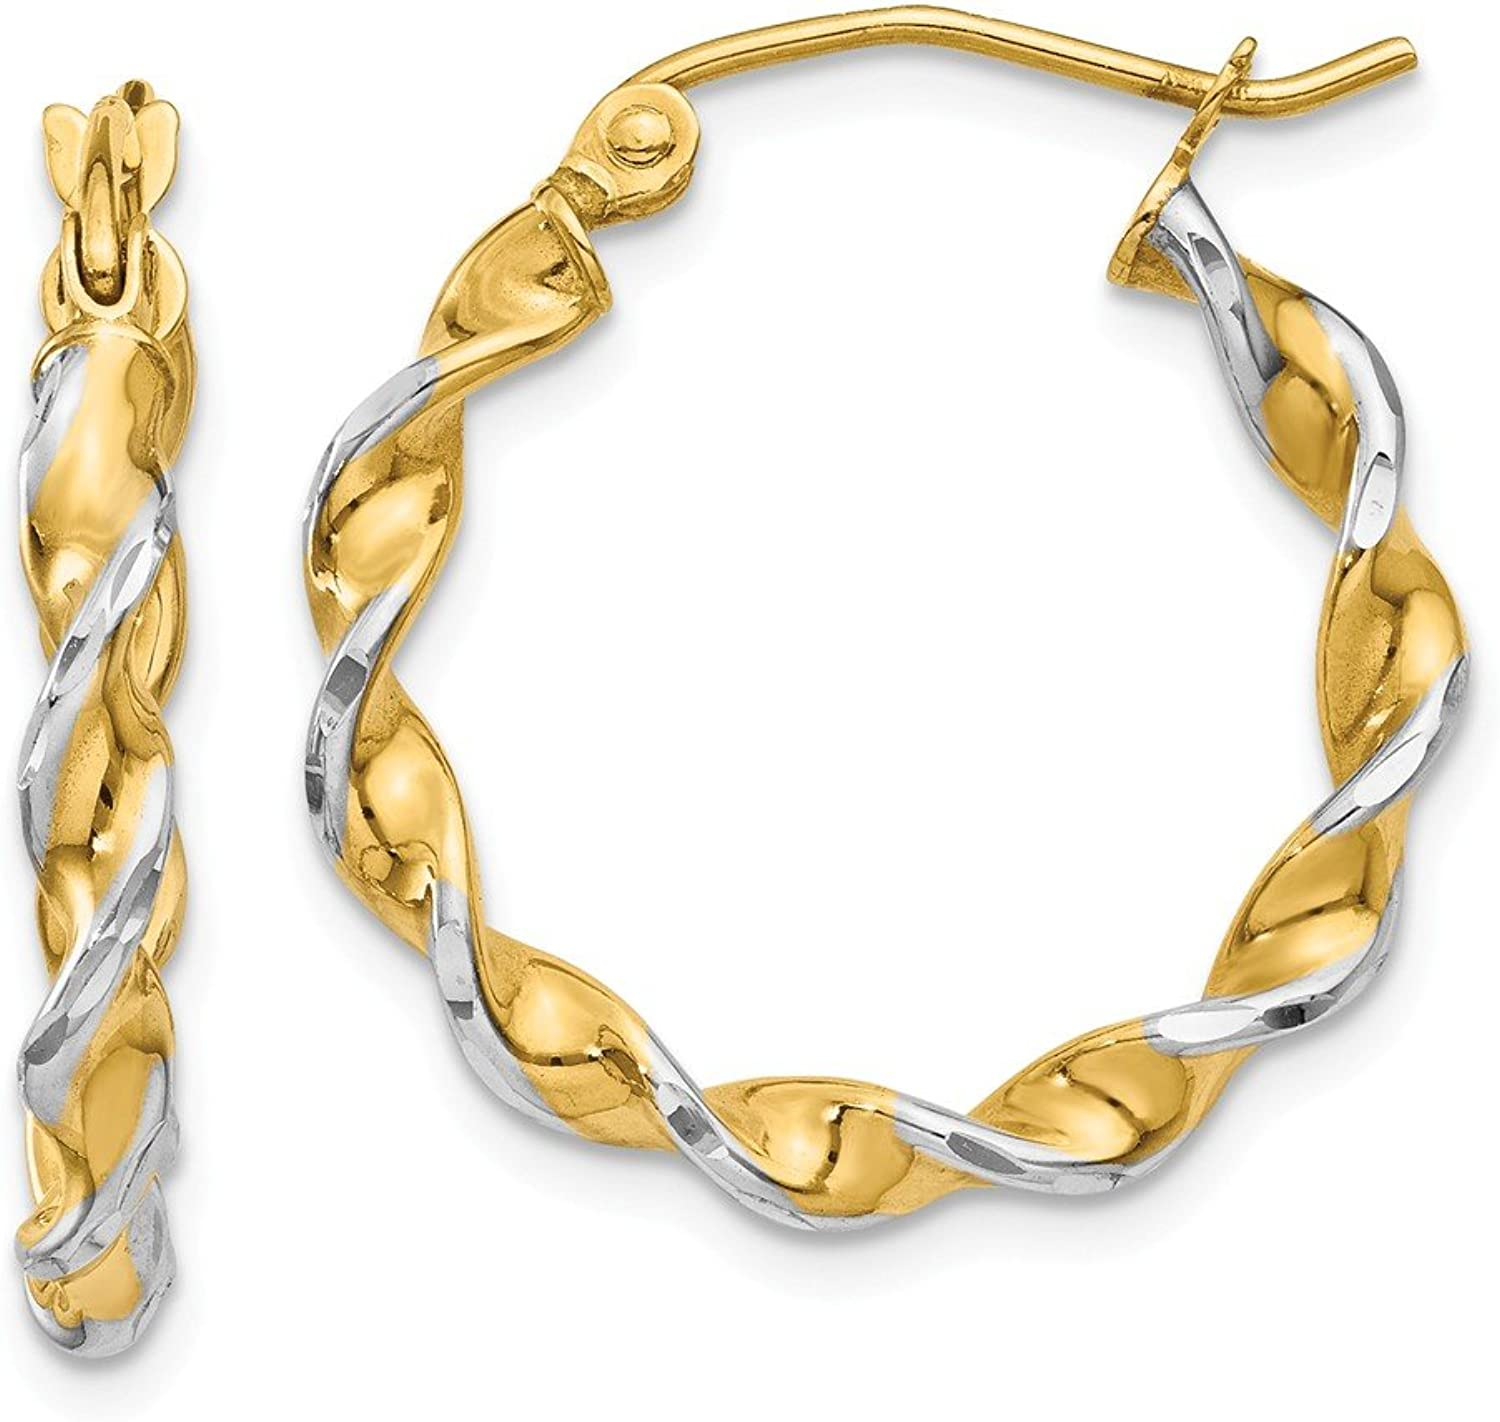 Beautiful rhodium plated gold and silver 14K rhodiumplatedgoldandsilver 14k Polished 2.75mm Fancy Twisted Hoop Earrings